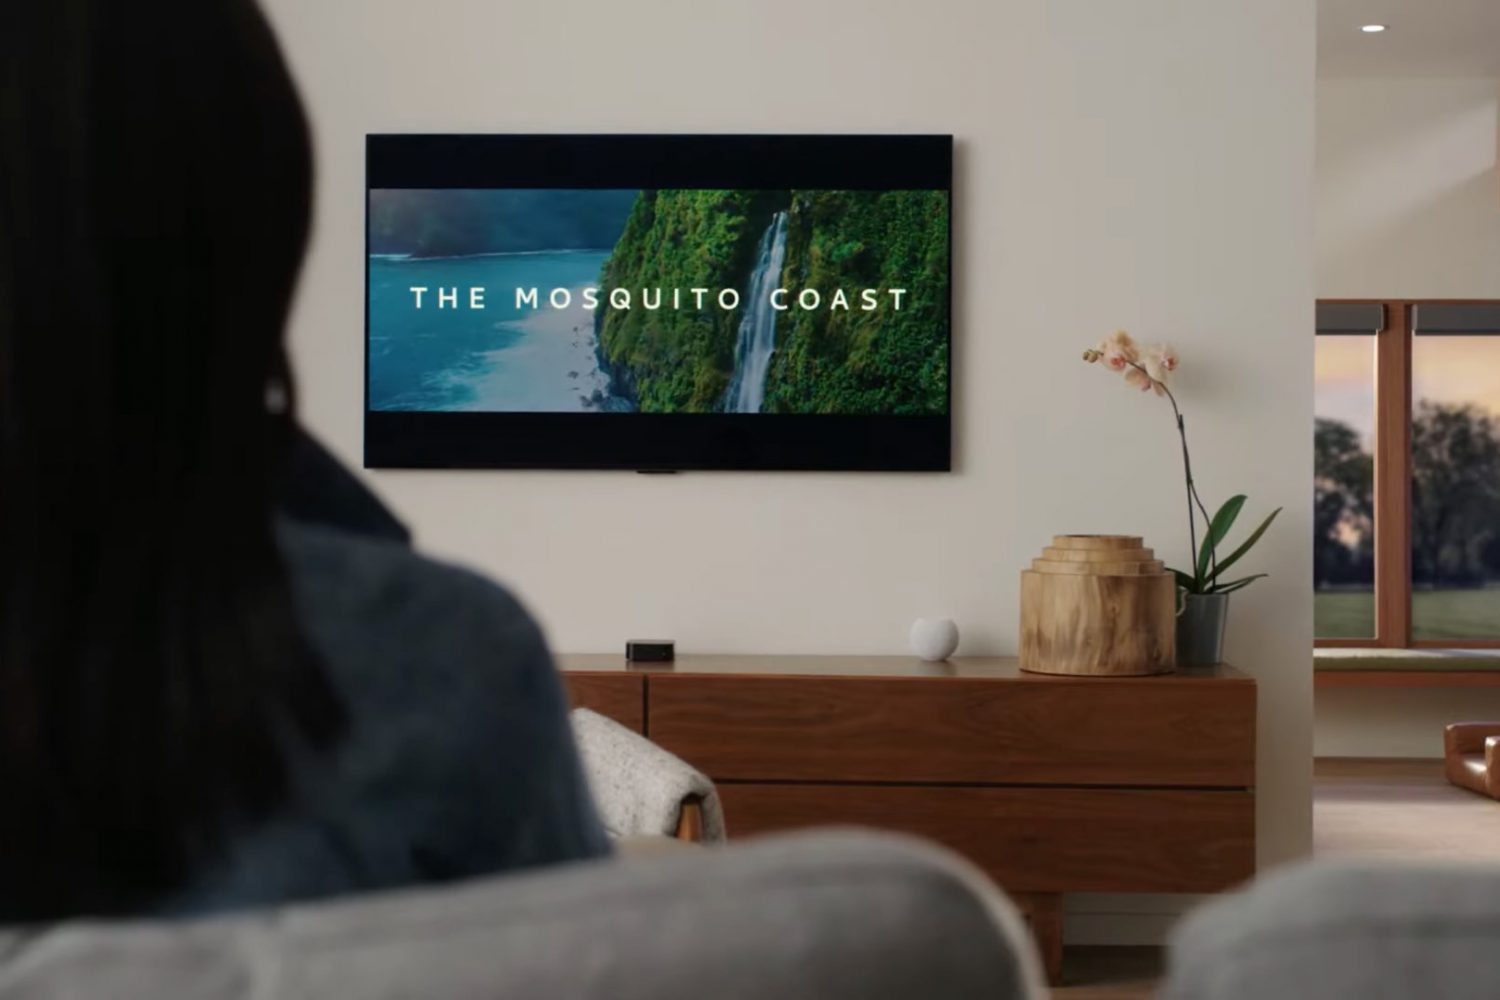 """An image showing a person sitting on a couch and watching """"Mosquito Coast"""" on their Apple TV with HomePod mini next to it"""